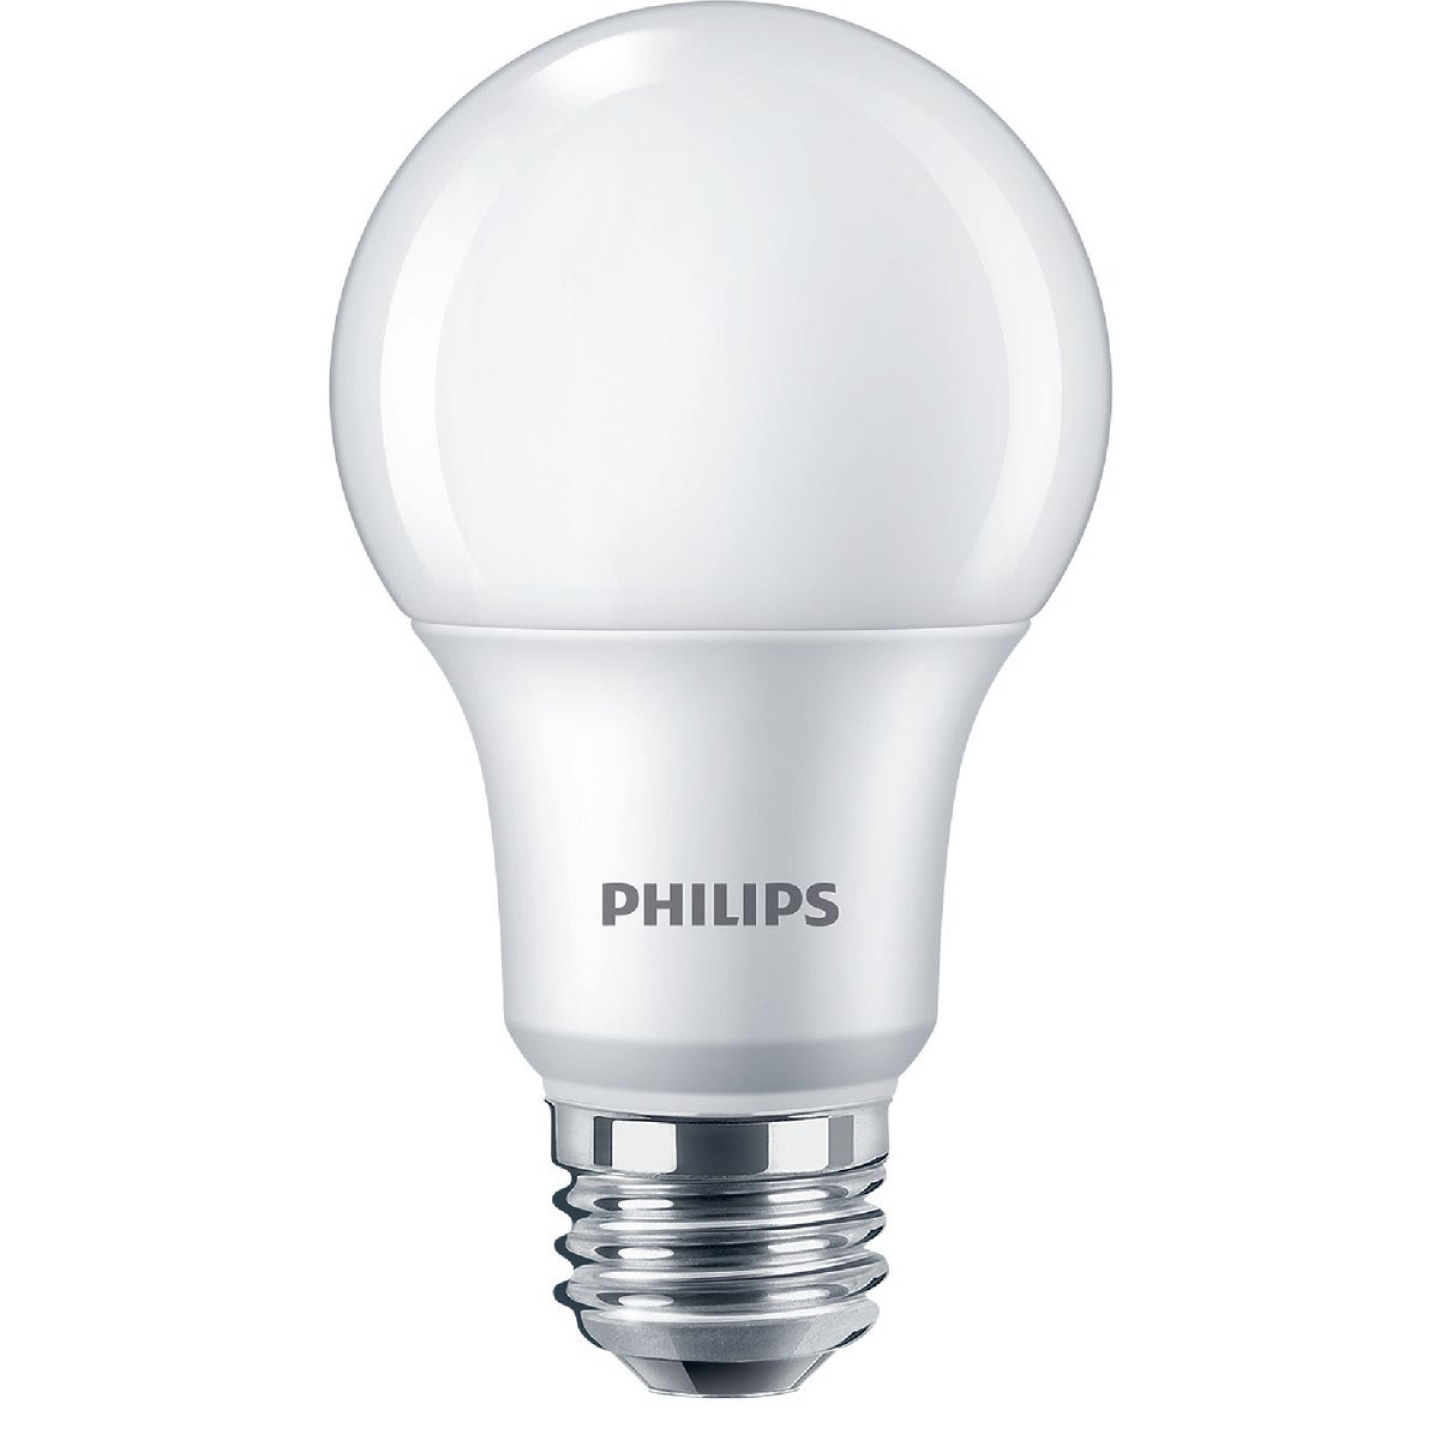 Philips 40W Equivalent Daylight A19 Medium Dimmable LED Light Bulb (4-Pack) Image 1